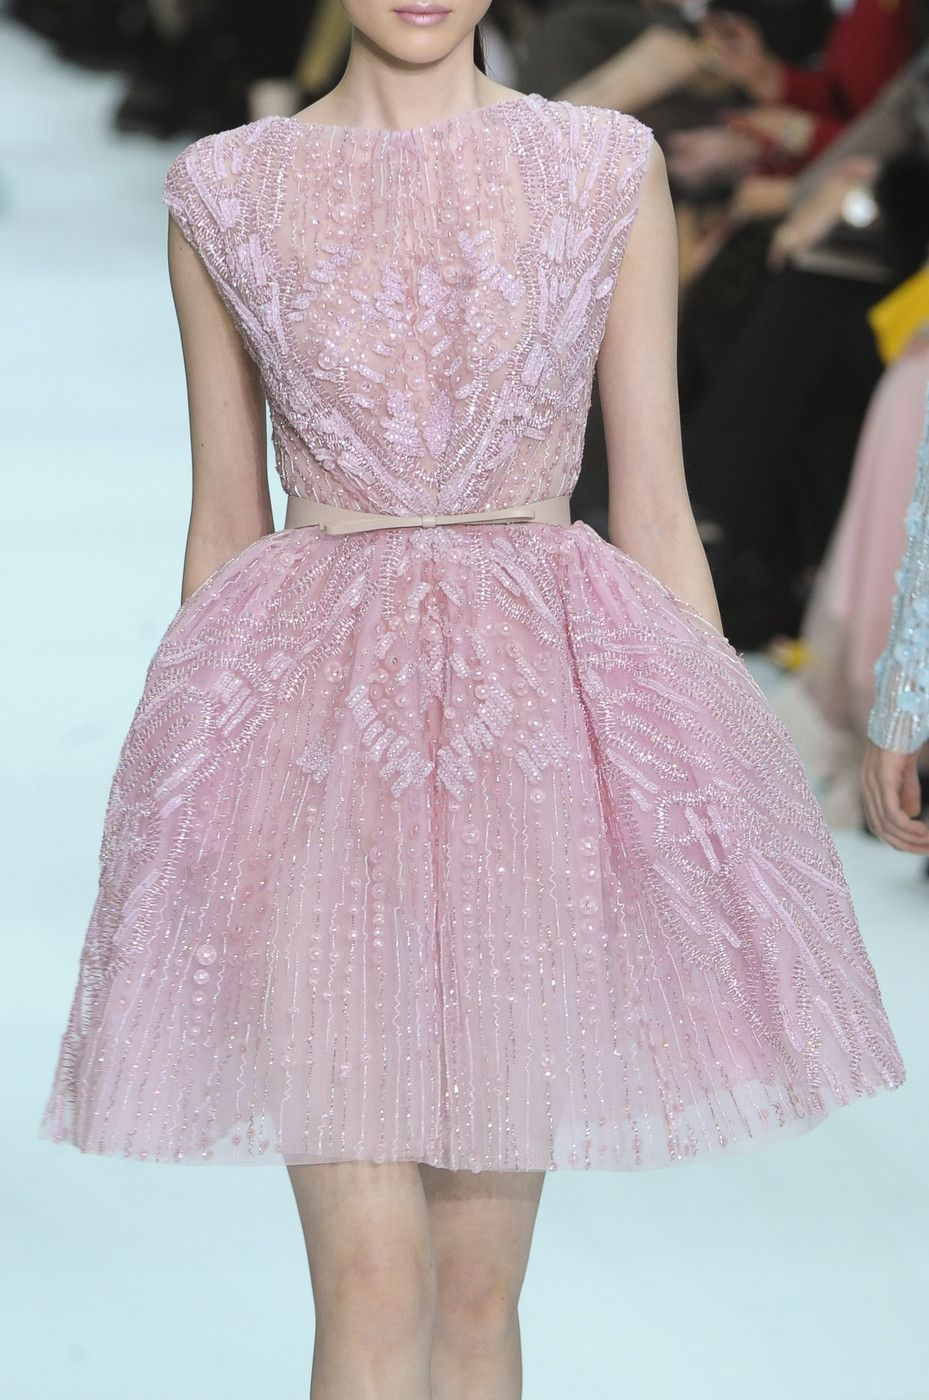 Elie saab at couture spring couture collection couture and gowns